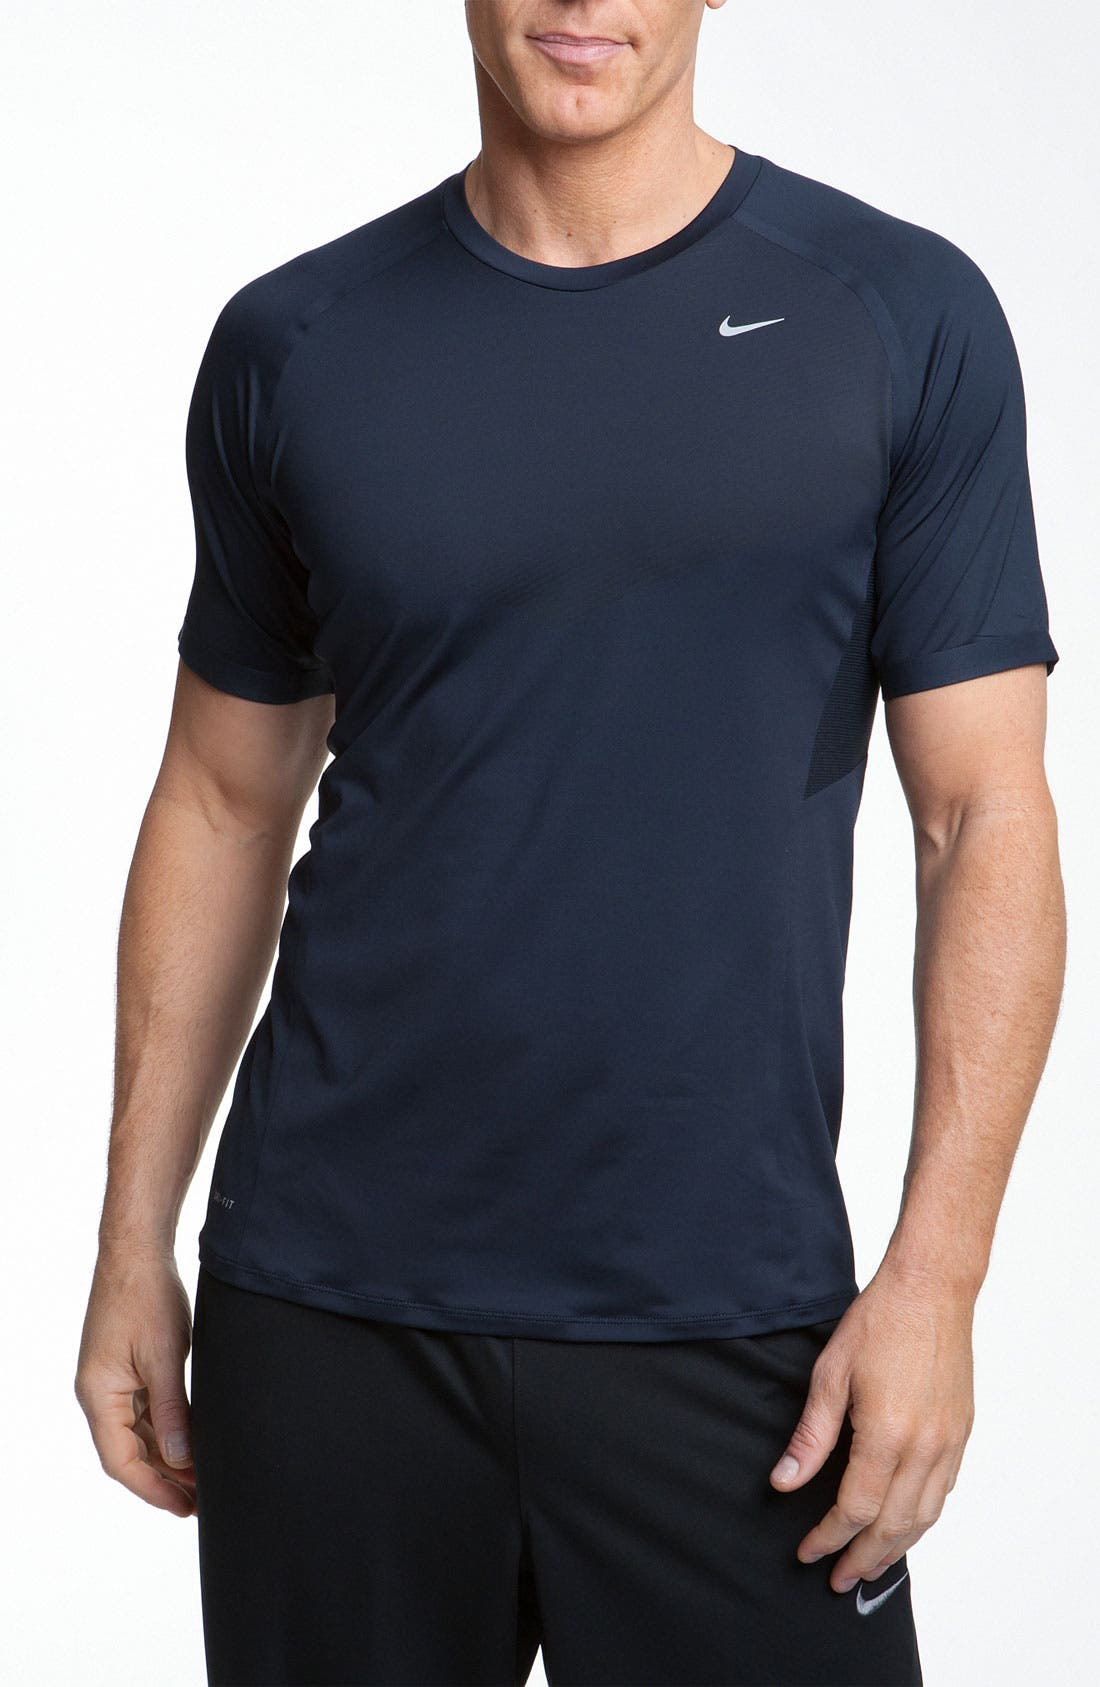 Main Image - Nike 'Speed' Short Sleeve Top